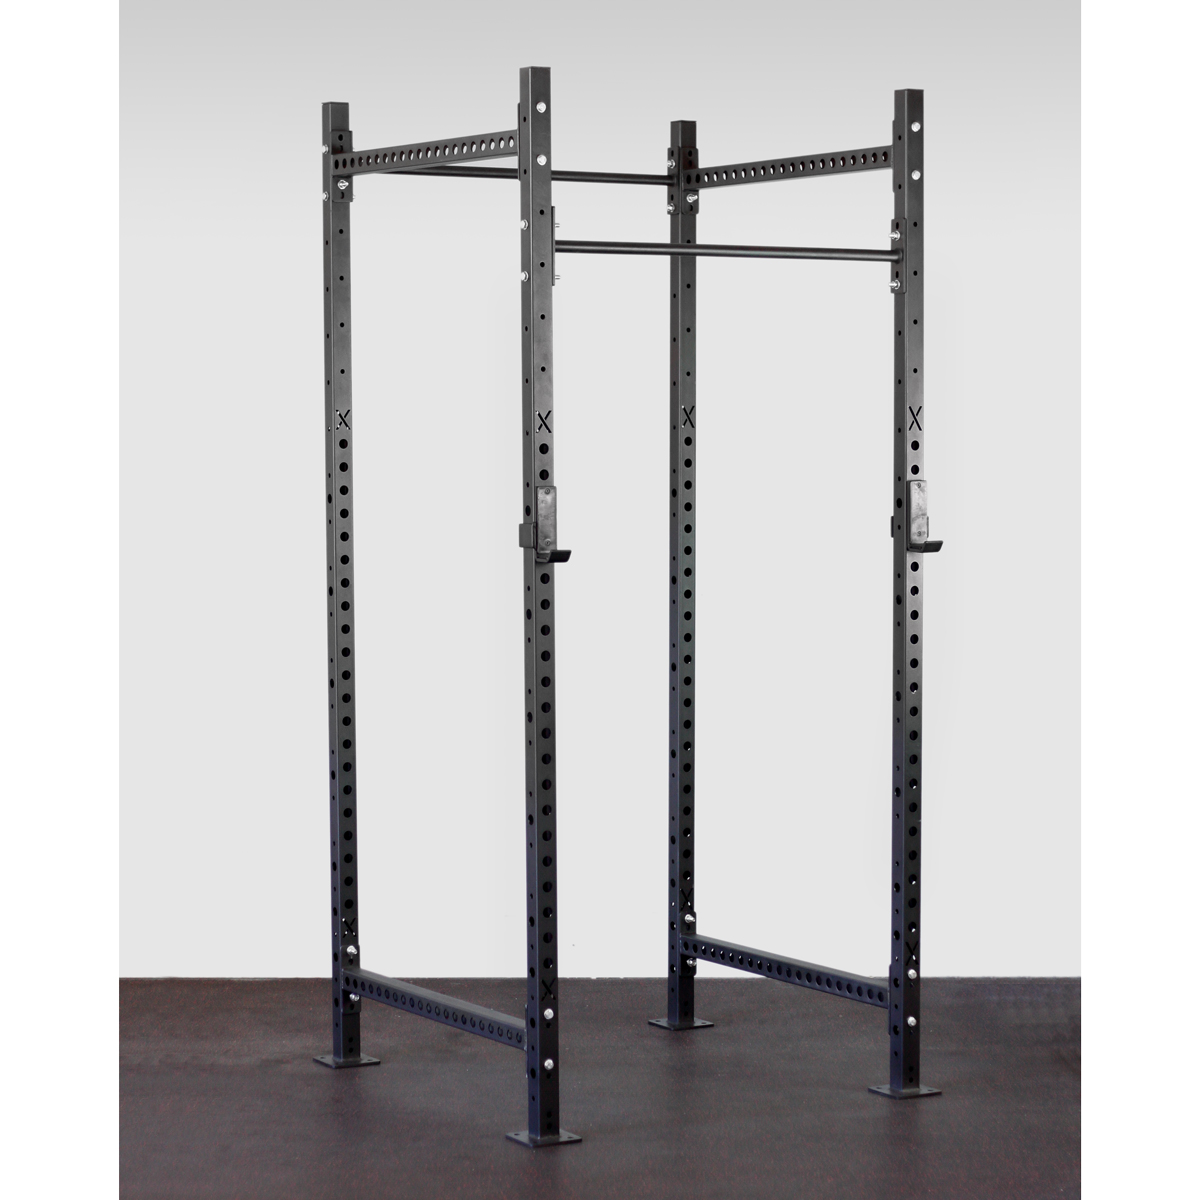 4x4 Elite Power Rack - Out of Stock